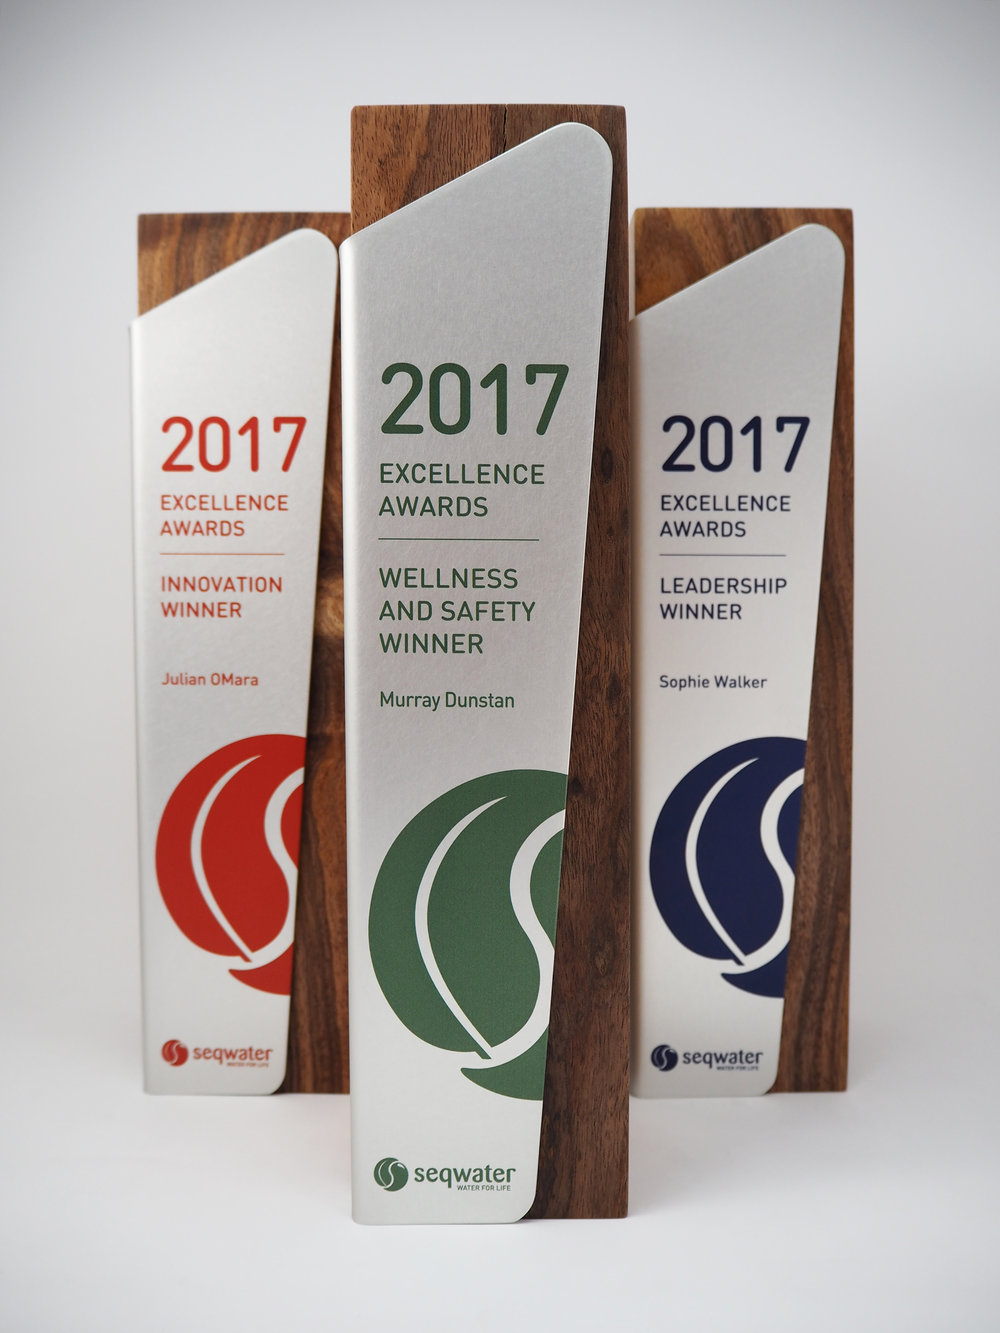 south-east-queensland-water-aluminium-timber-eco-awards-throphy-04.jpg